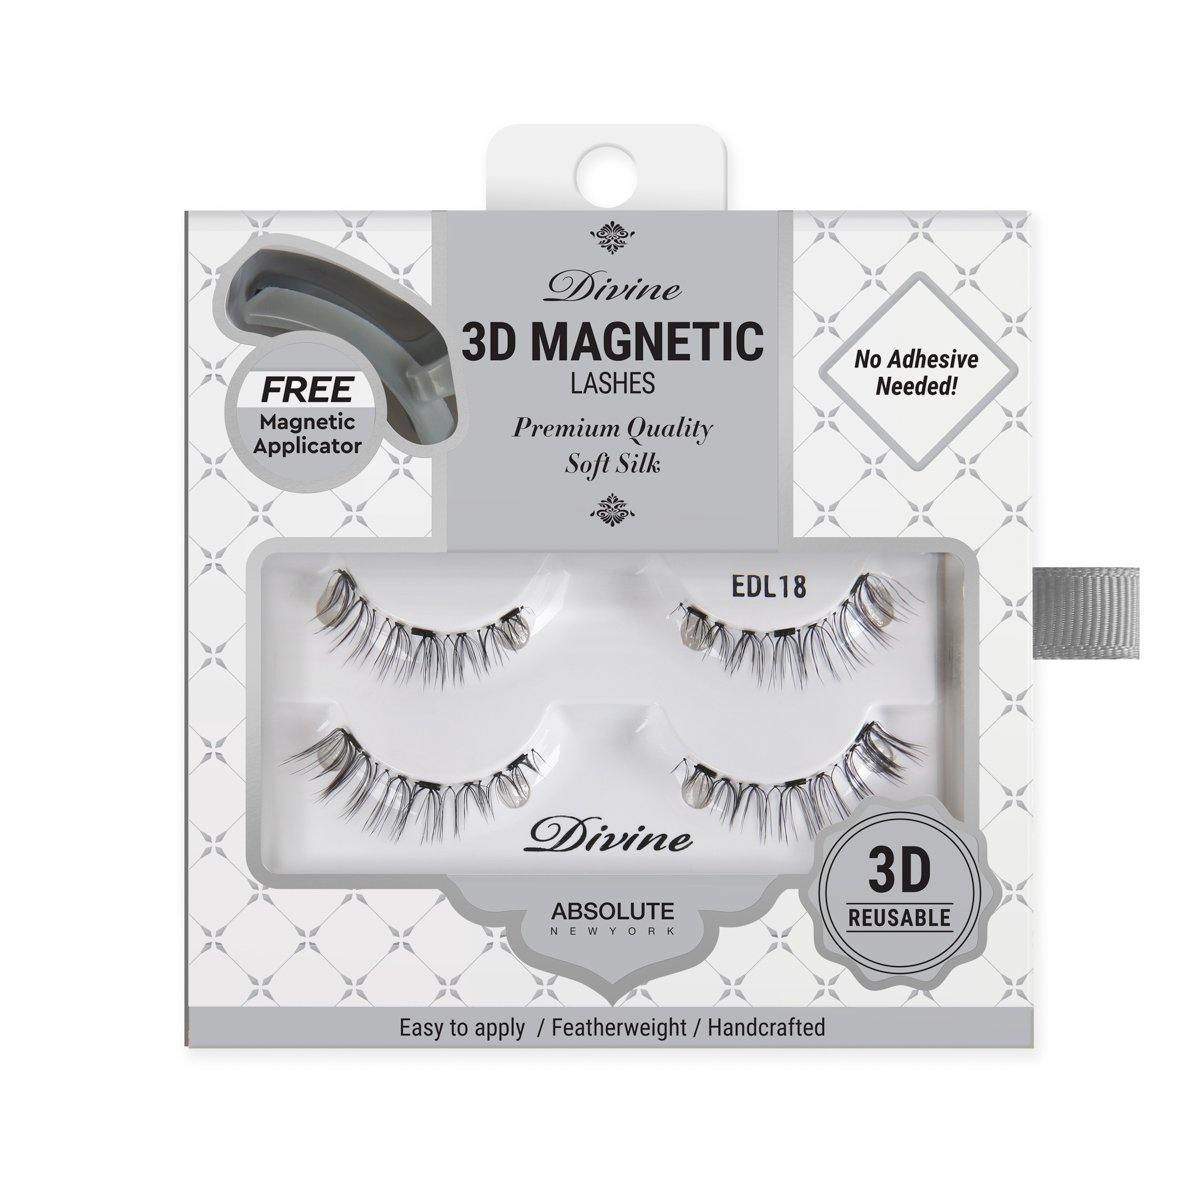 Absolute New York Divine 3D Magnetic Lashes